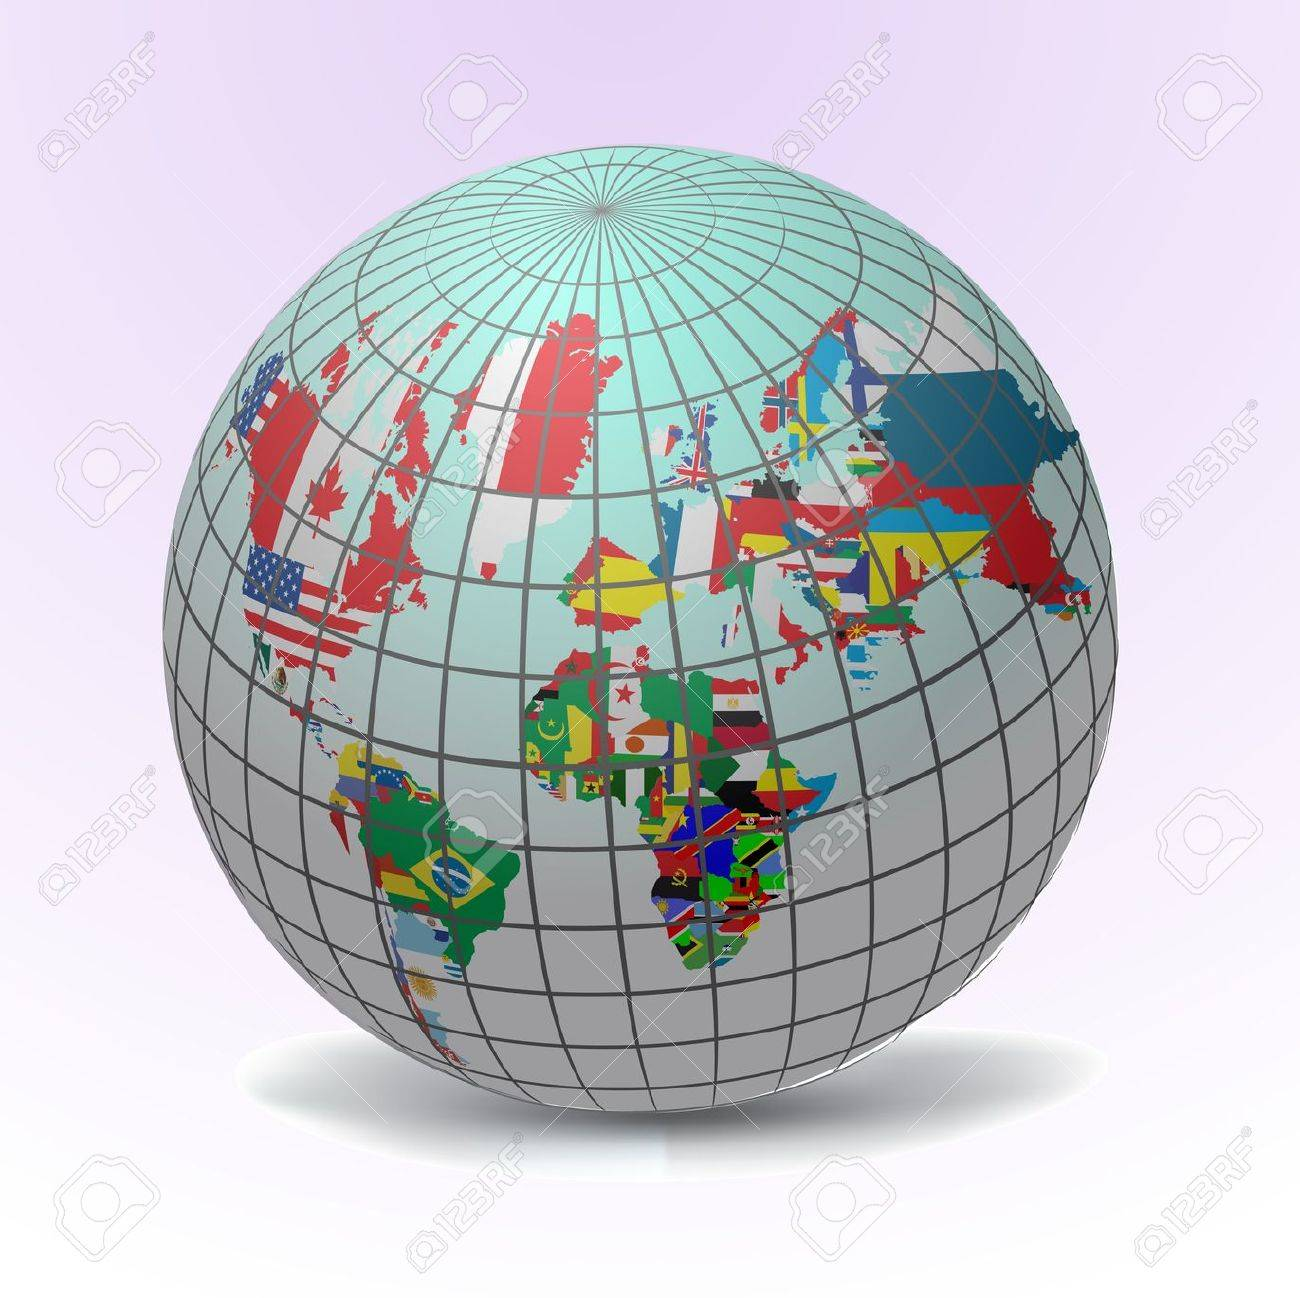 All flags in globe form, vecto illustration Stock Vector - 9686983